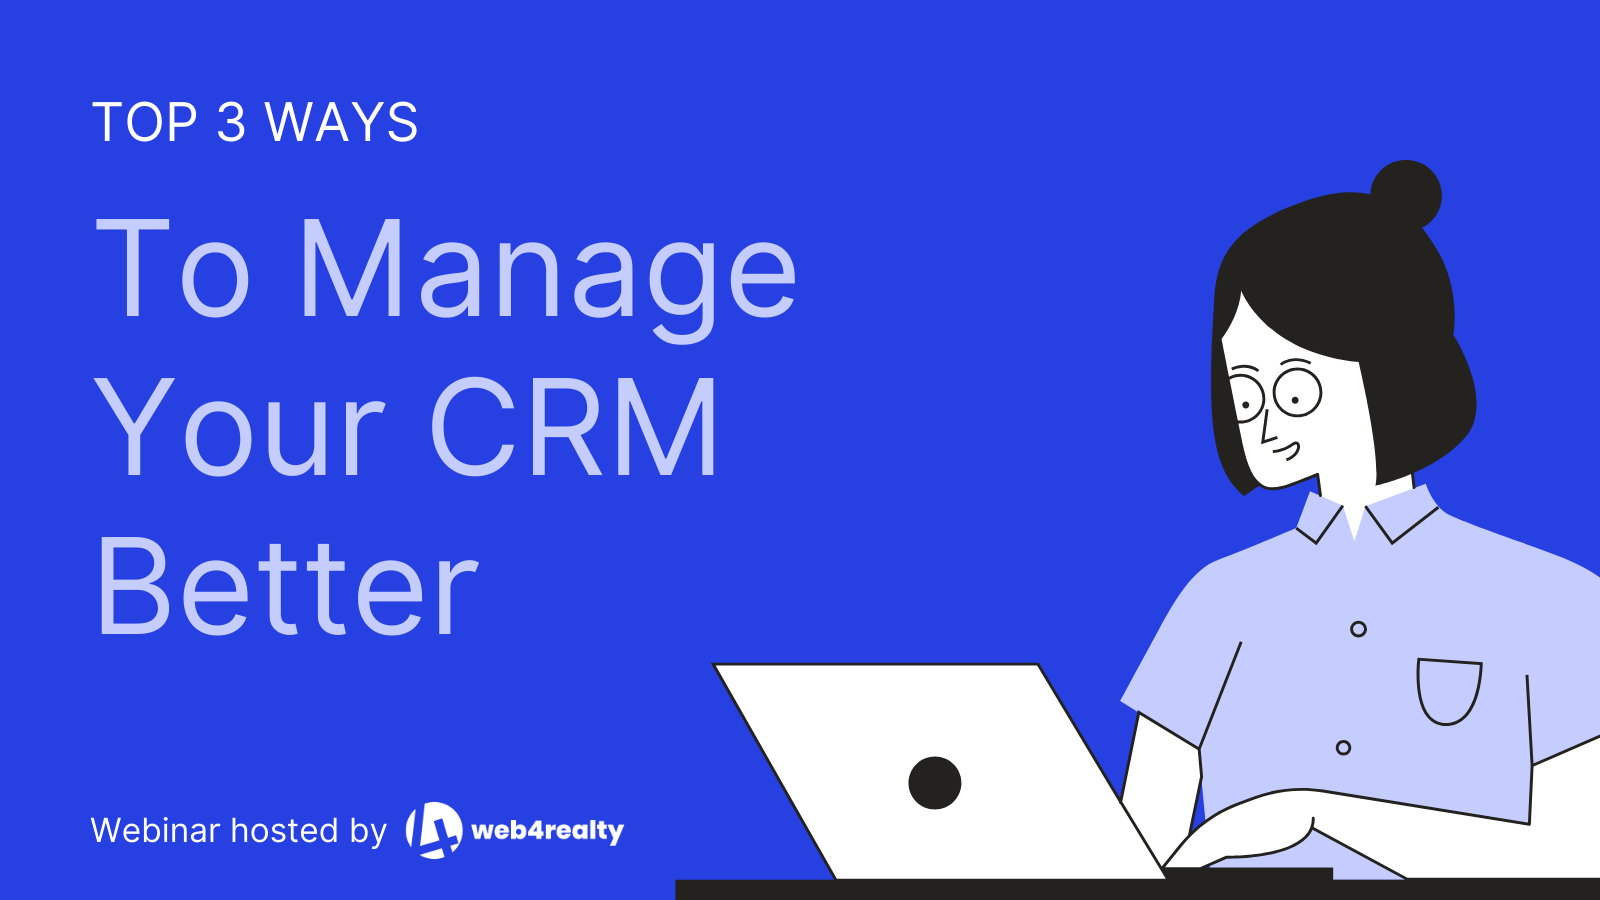 Top 3 ways to manager your crm better